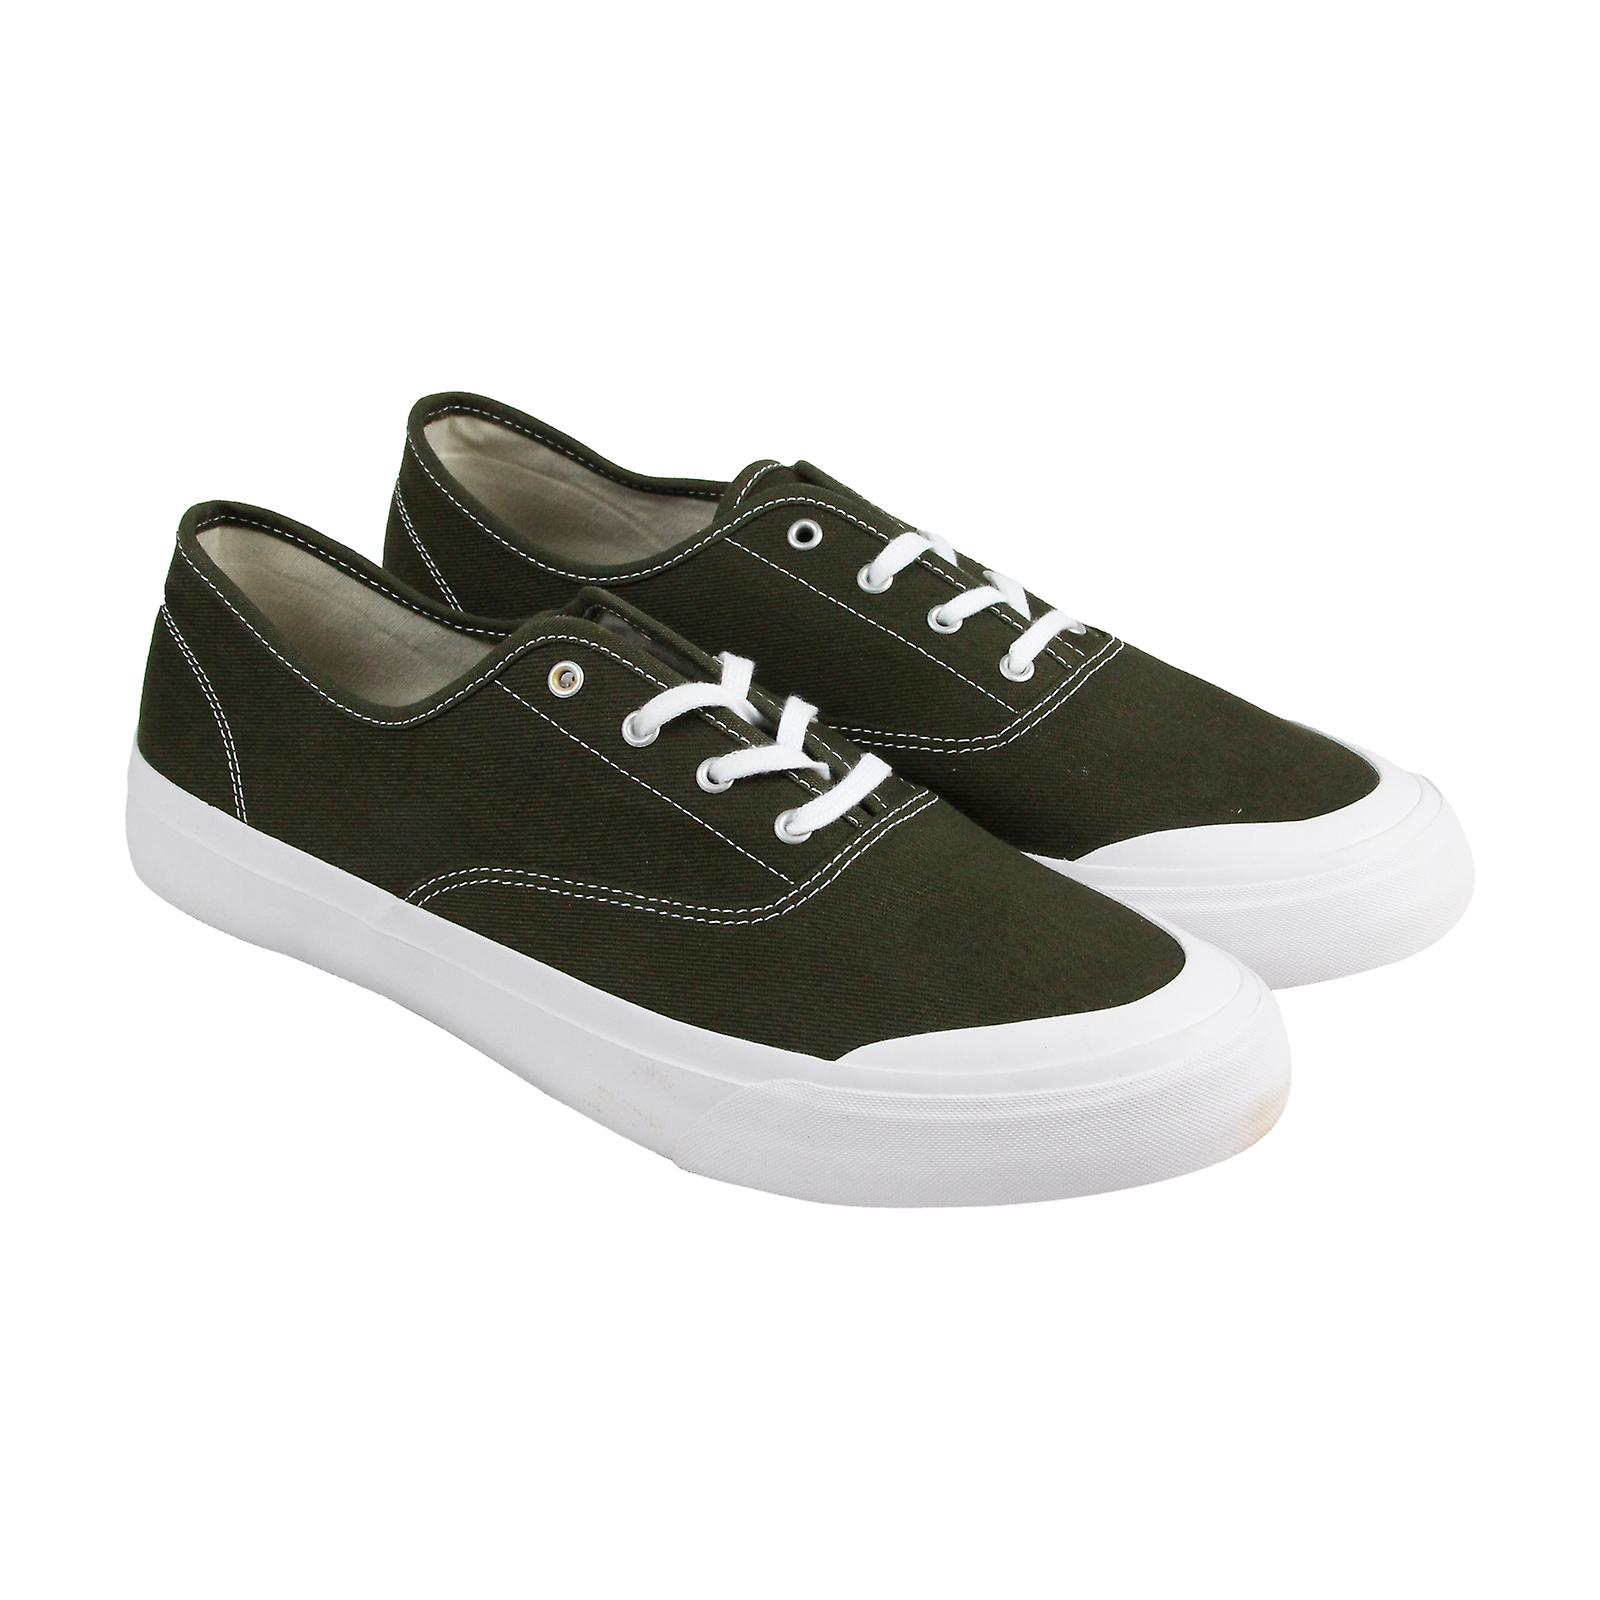 HUF Cromer Mens Green Canvas Lace Up Sneakers Shoes